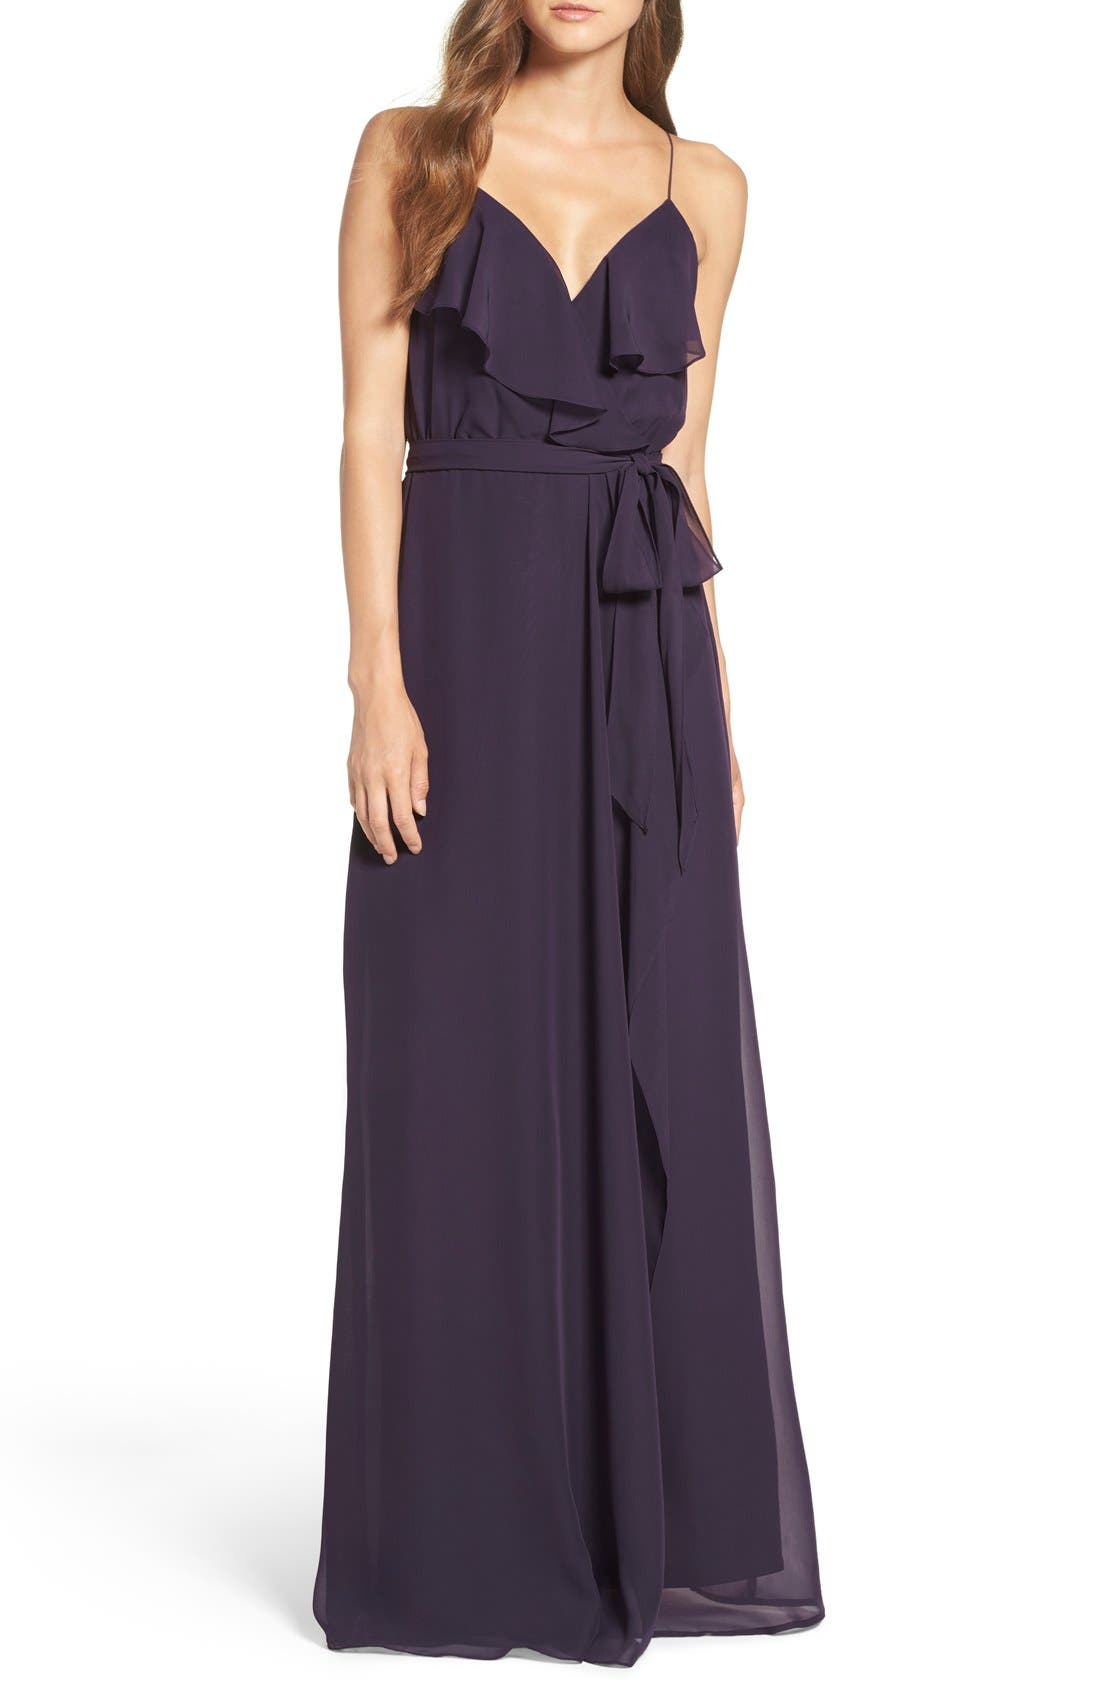 'Drew' Ruffle Front Chiffon Gown,                             Main thumbnail 10, color,